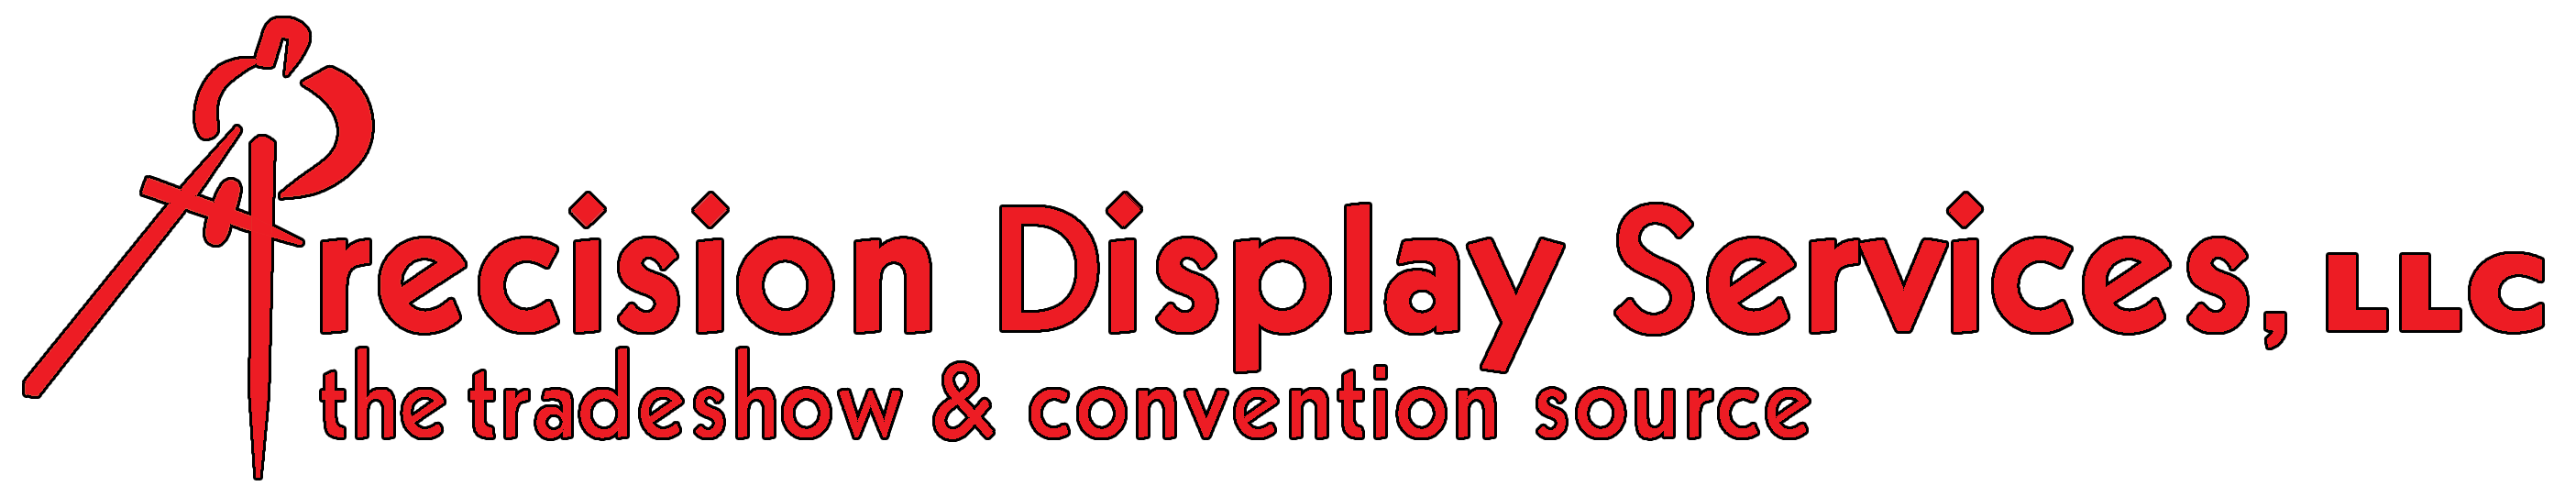 Precision Display Services